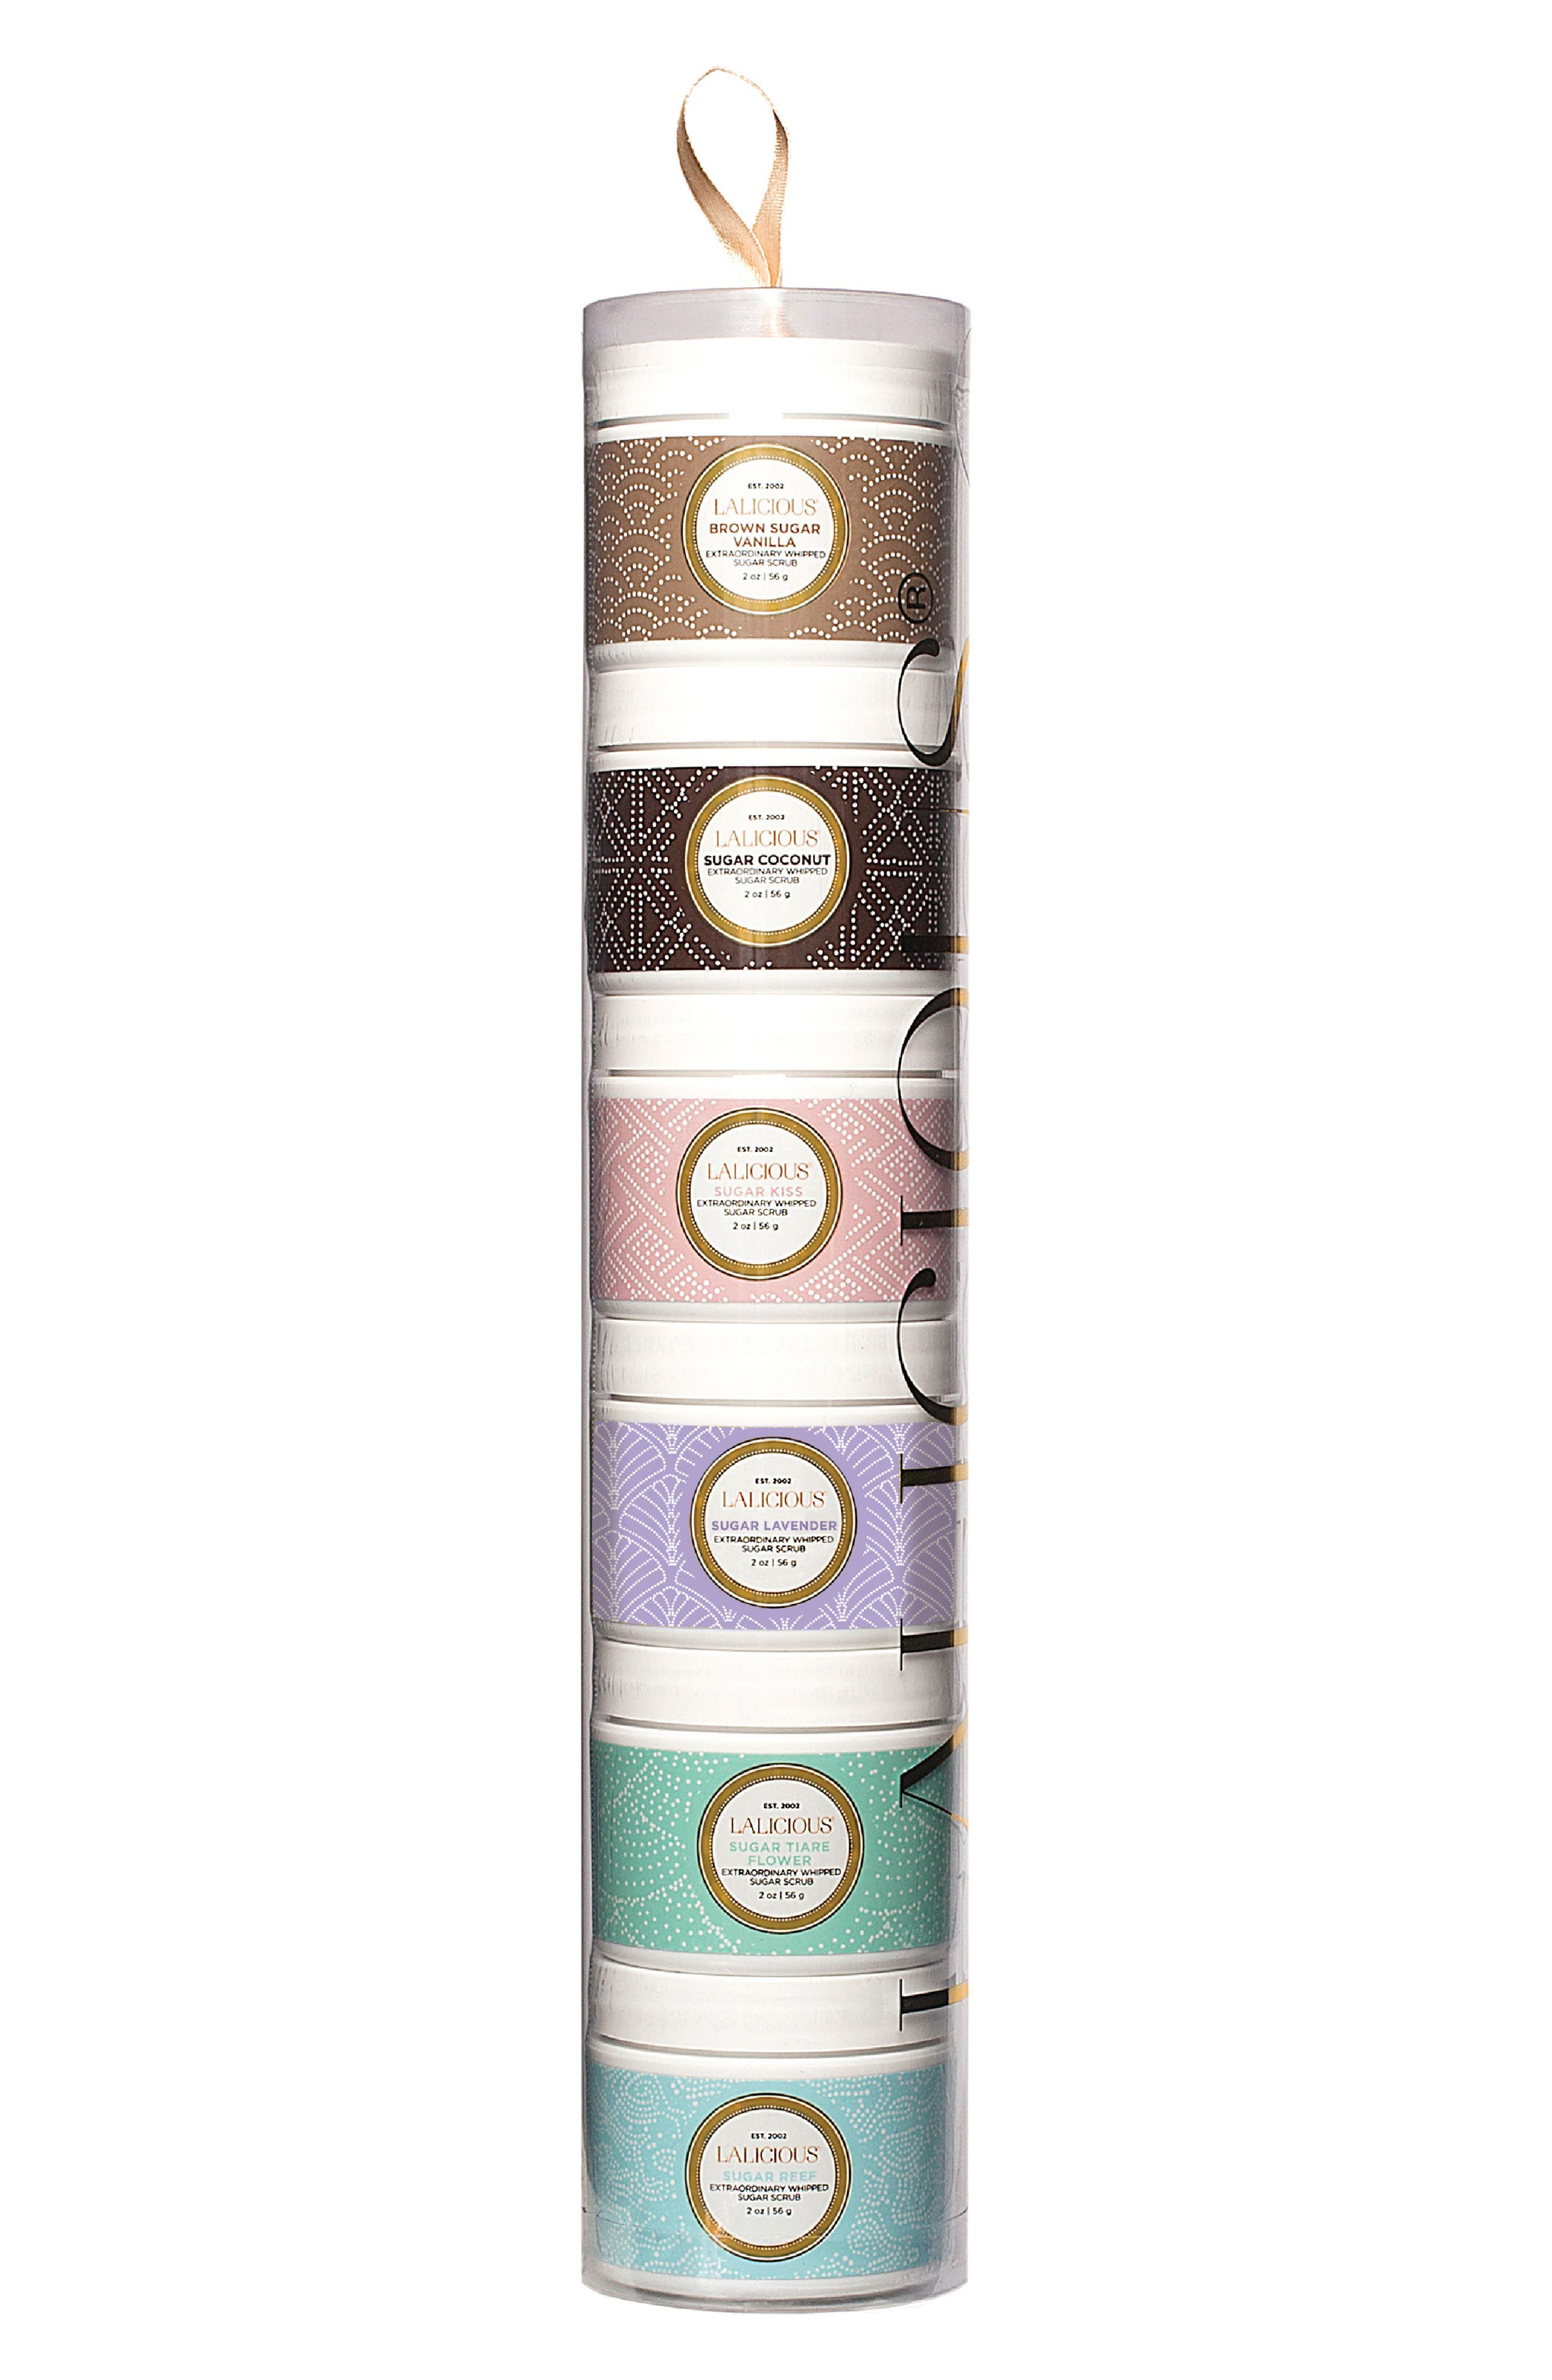 Alternate Image 1 Selected - LALICIOUS Sugar Scrub Tower Collection (Nordstrom Exclusive) ($57 Value)